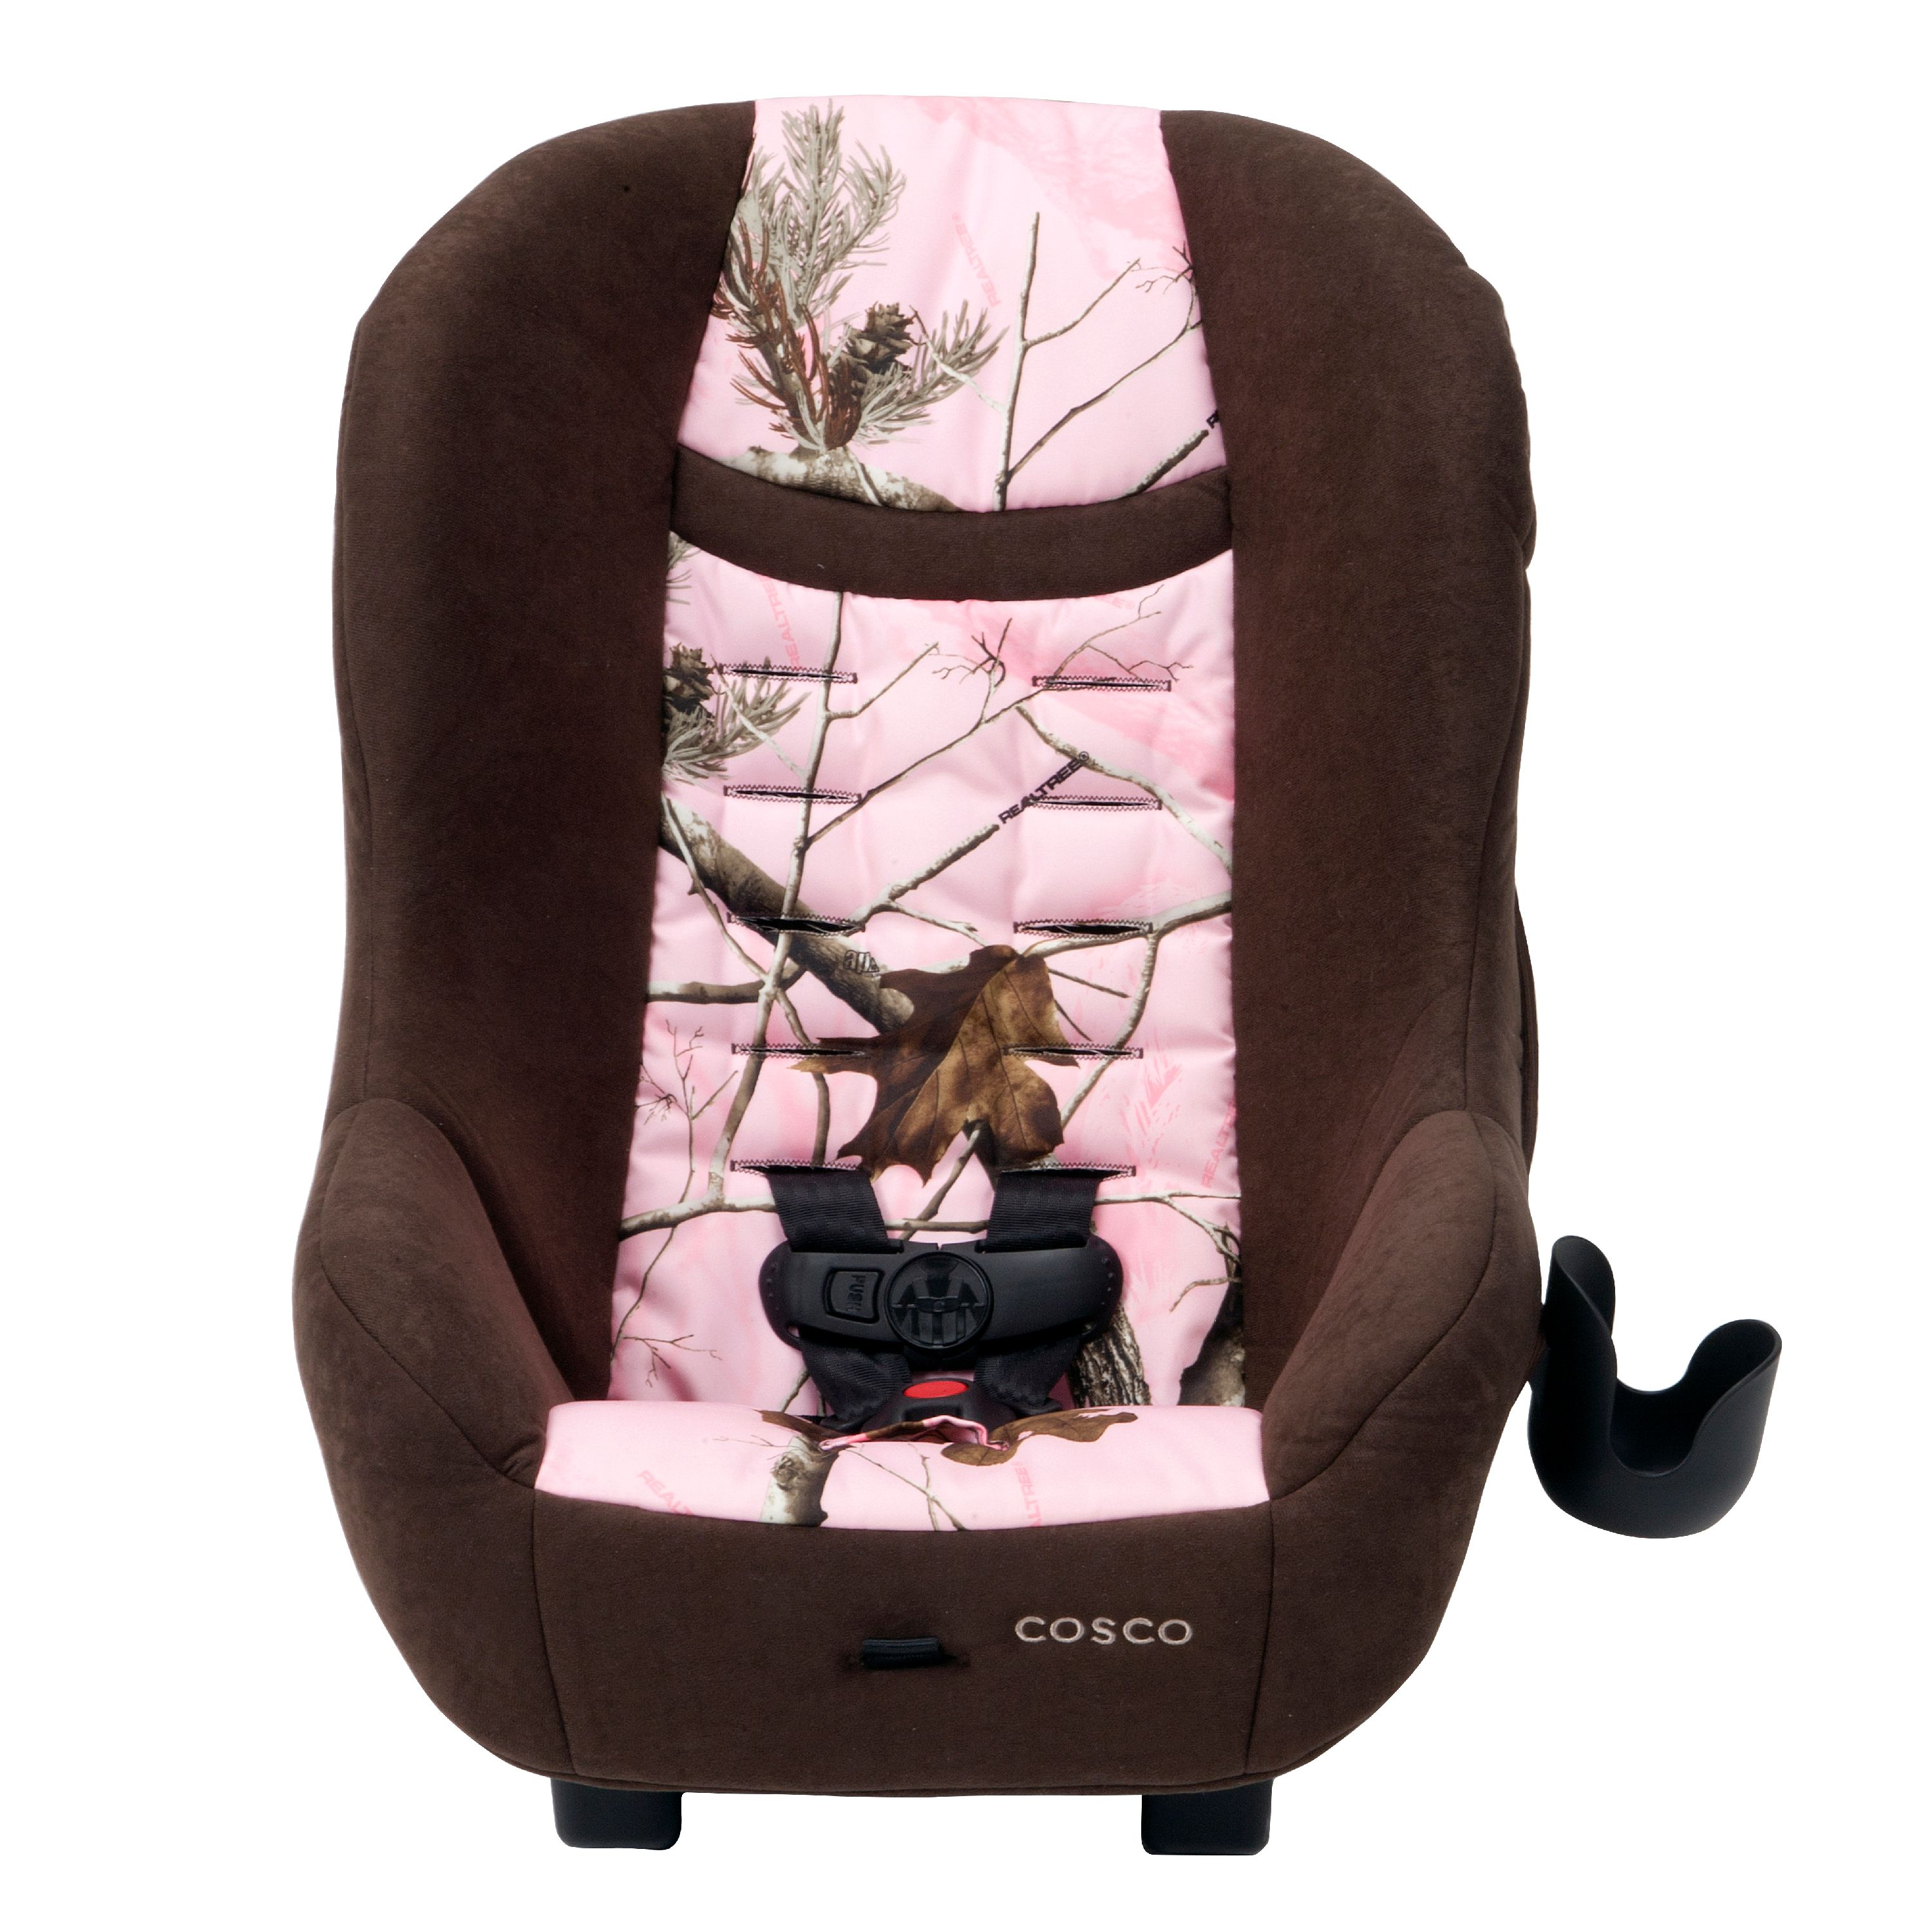 Scenera Cosco Convertible Car Seat Reeltree Rear Forward Facing Toddler NEW